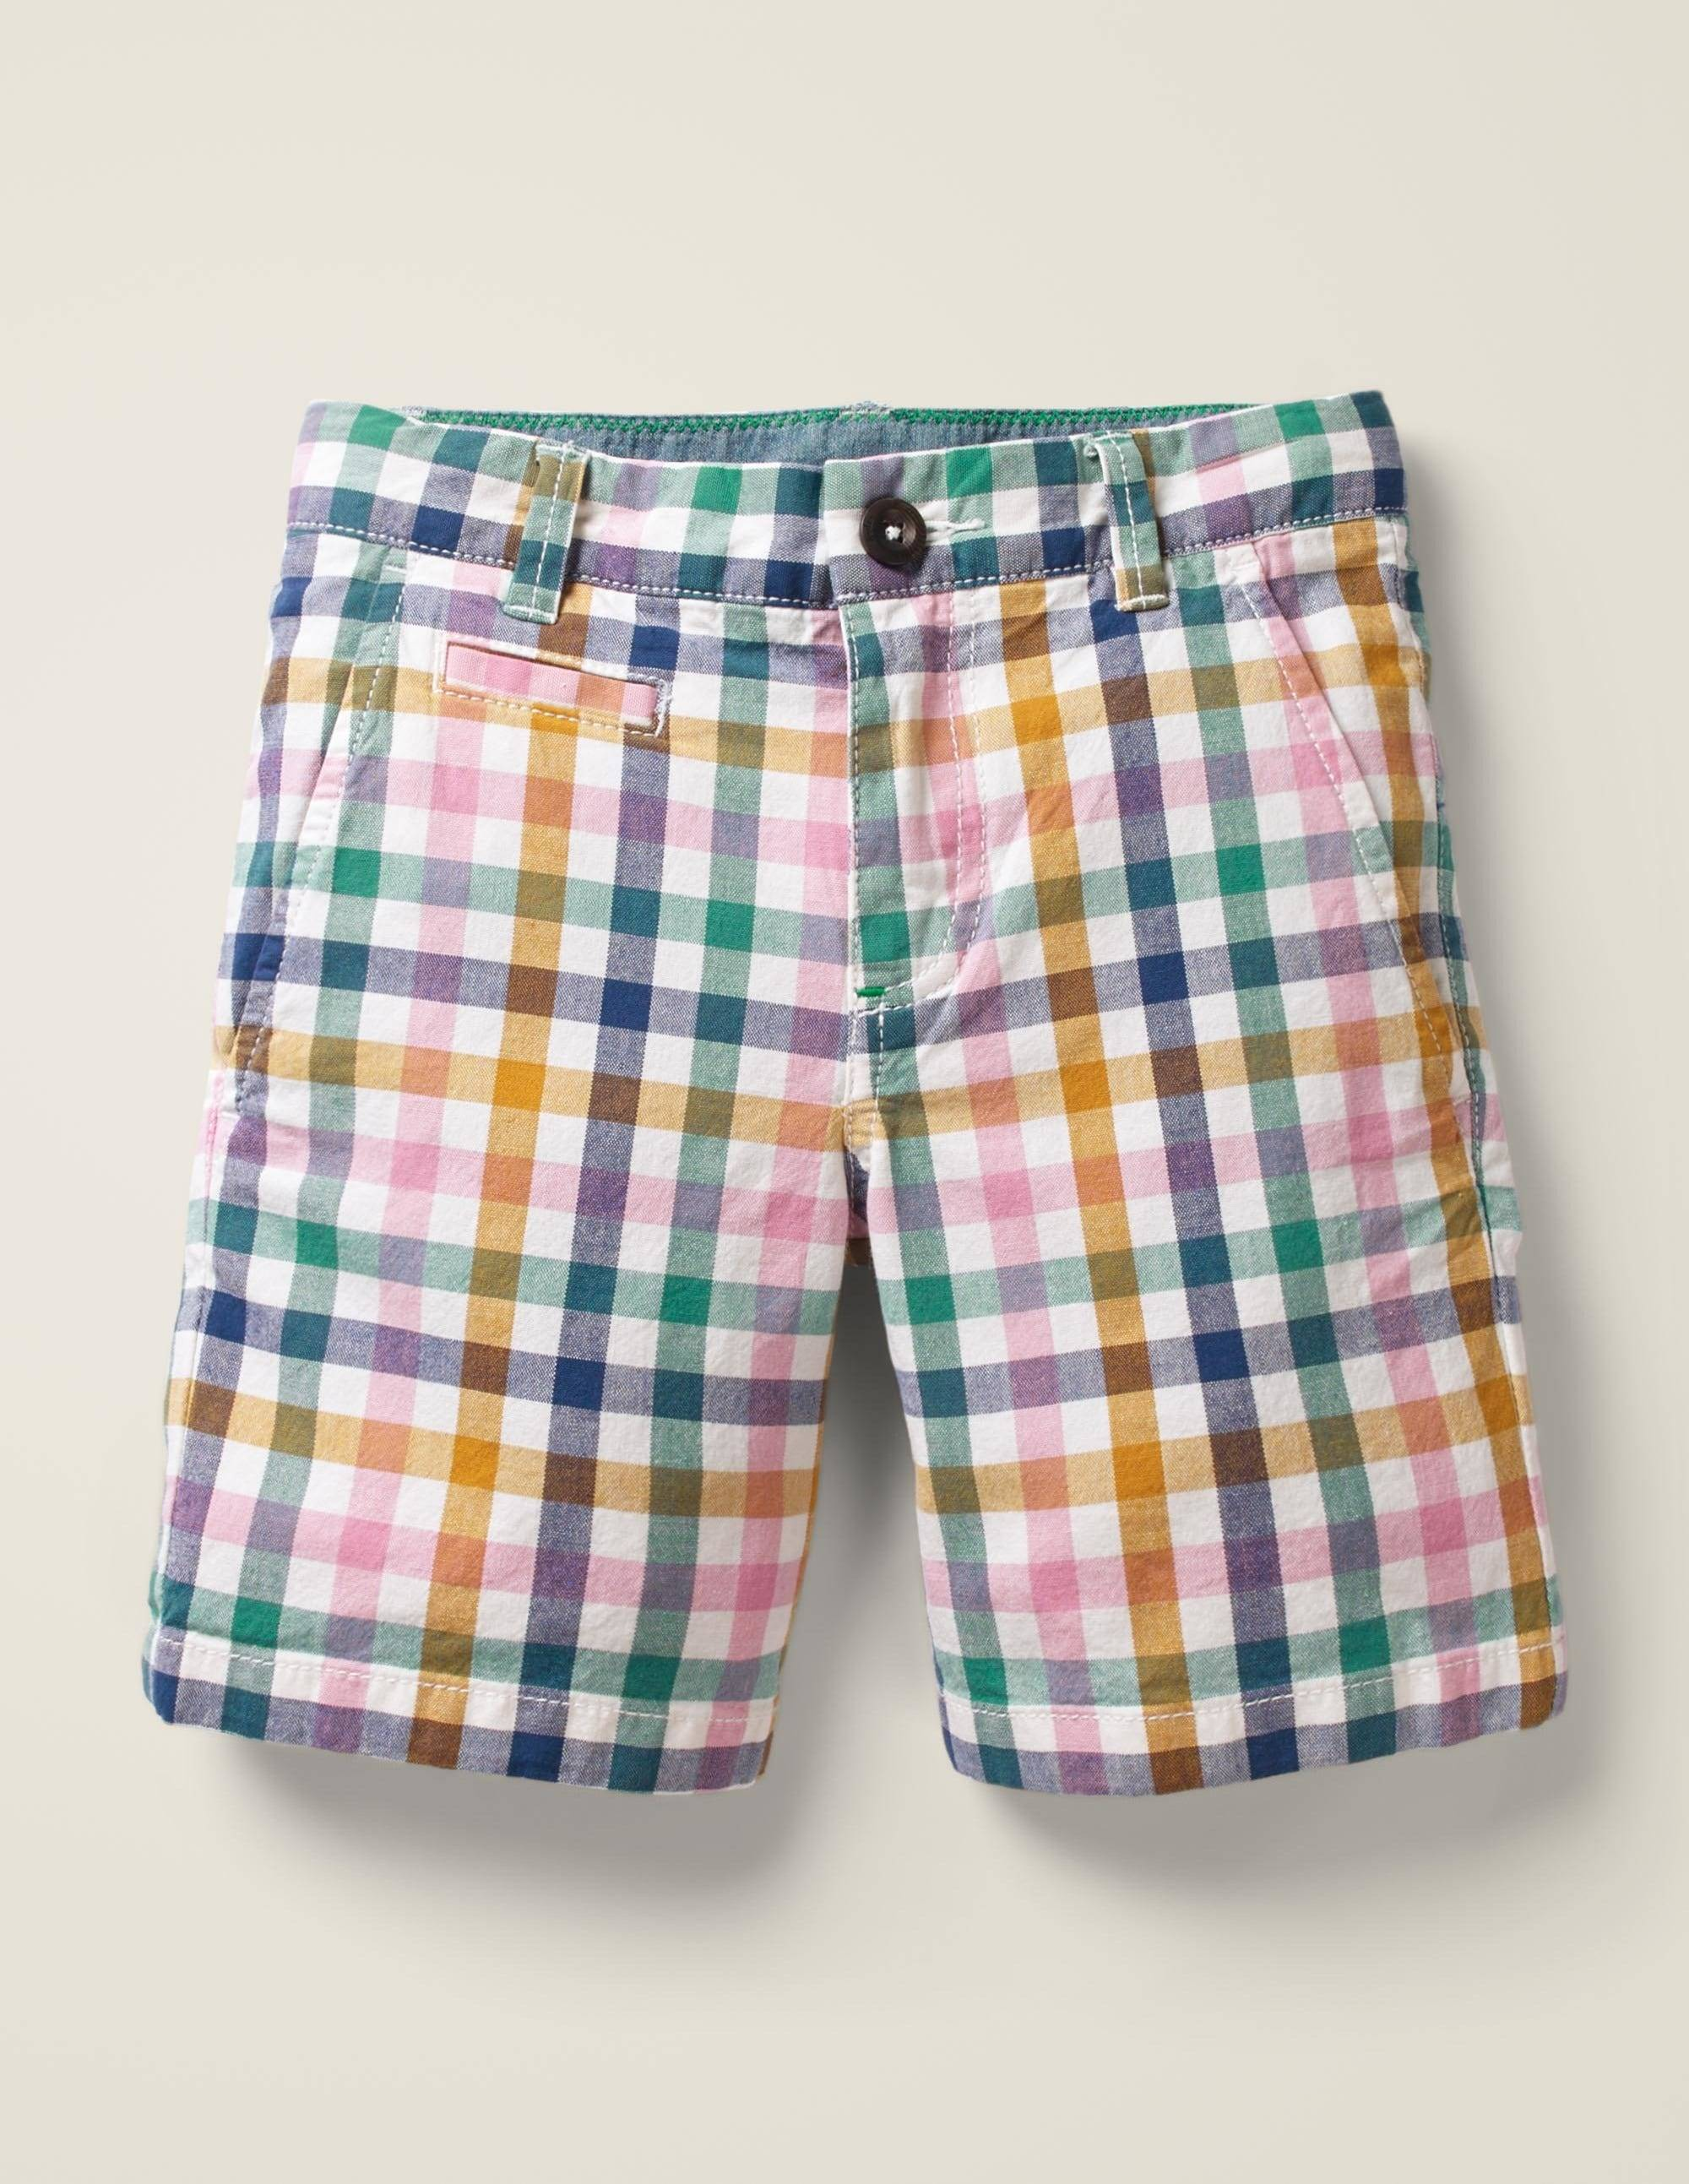 Mini Short chino MLT Femme Boden, Multi - 3a